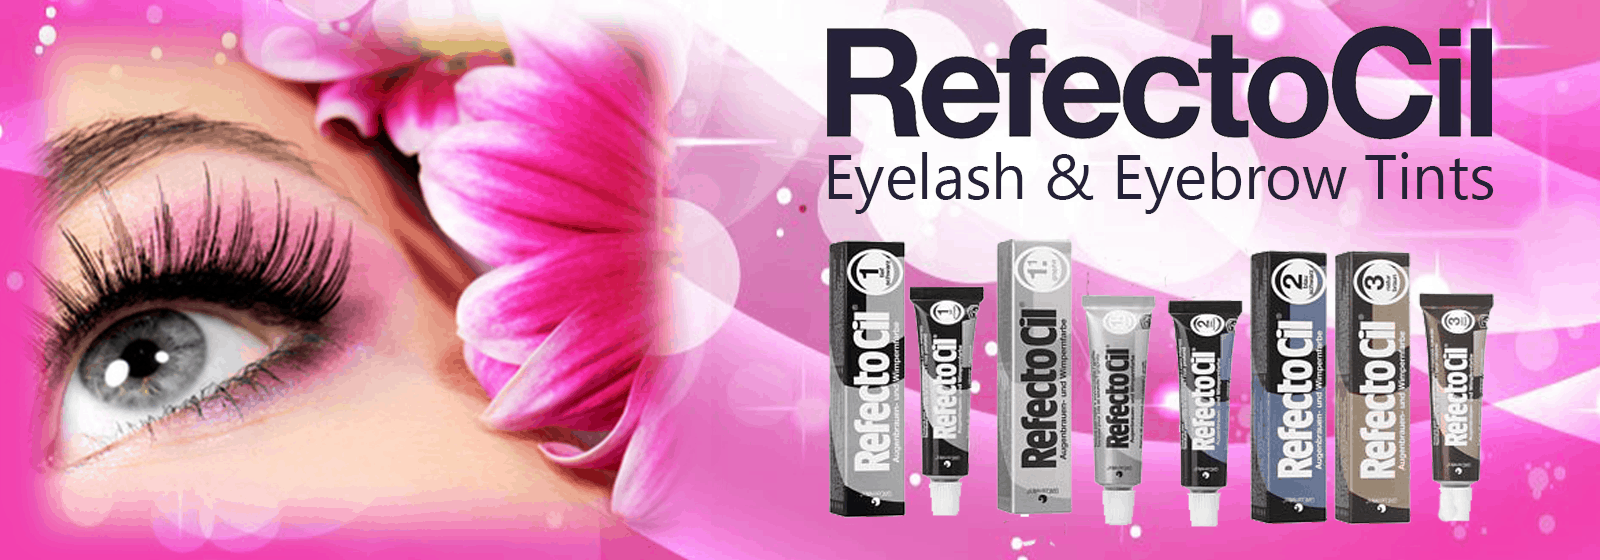 Refectocil Tints